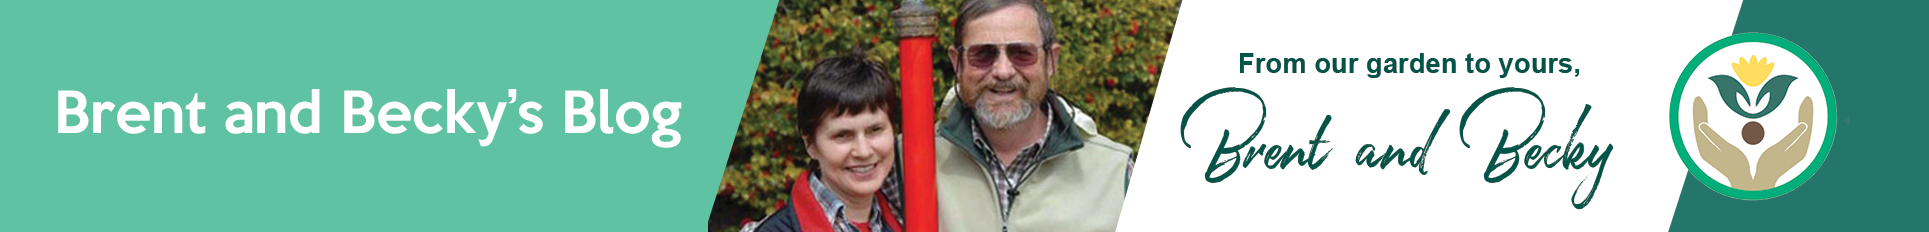 Brent and Becky's Bulb Blog Header Design Articles gardening